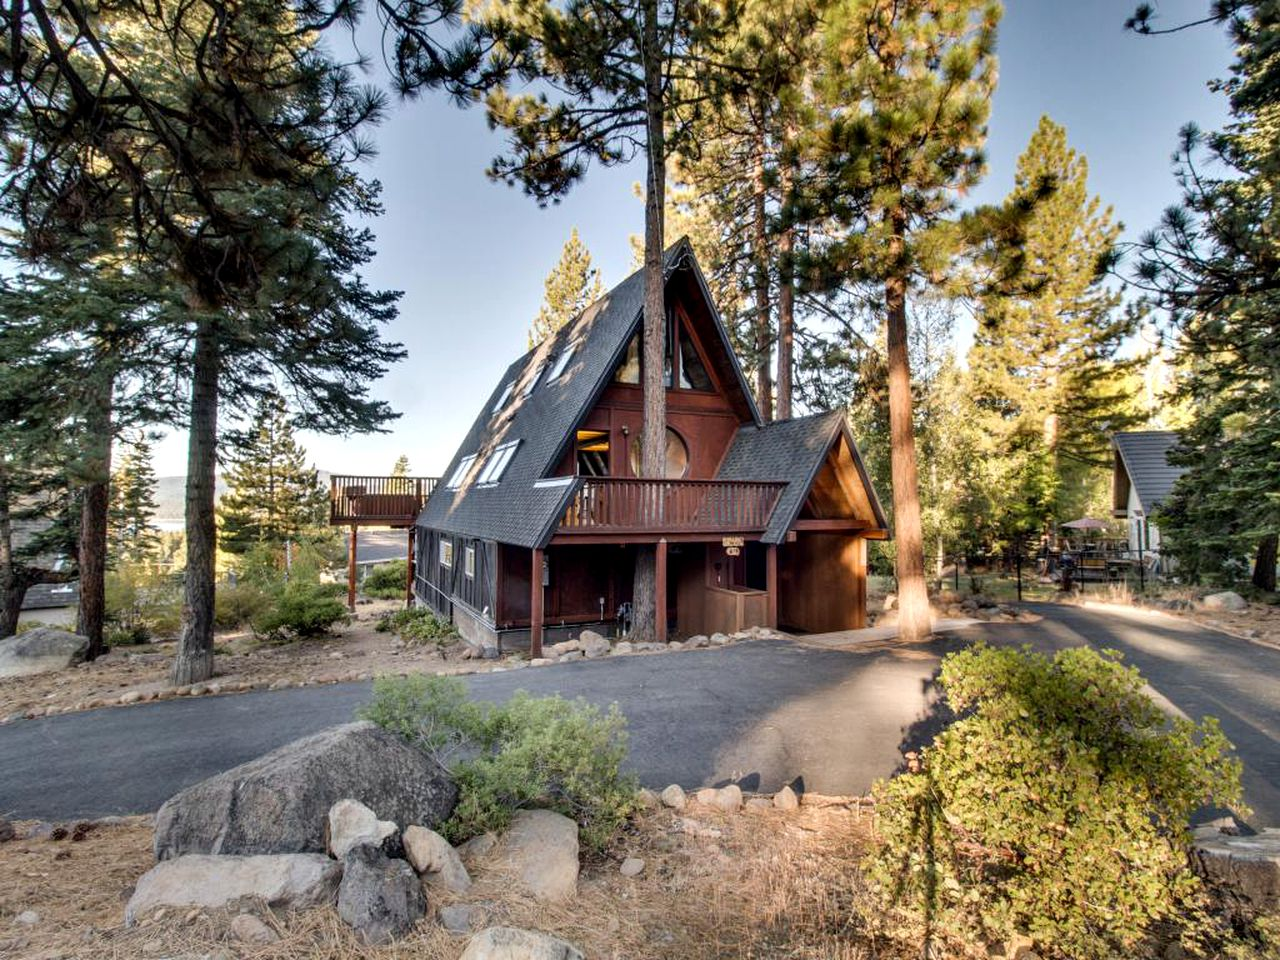 A-Frame Cabins (Tahoe City, California, United States)